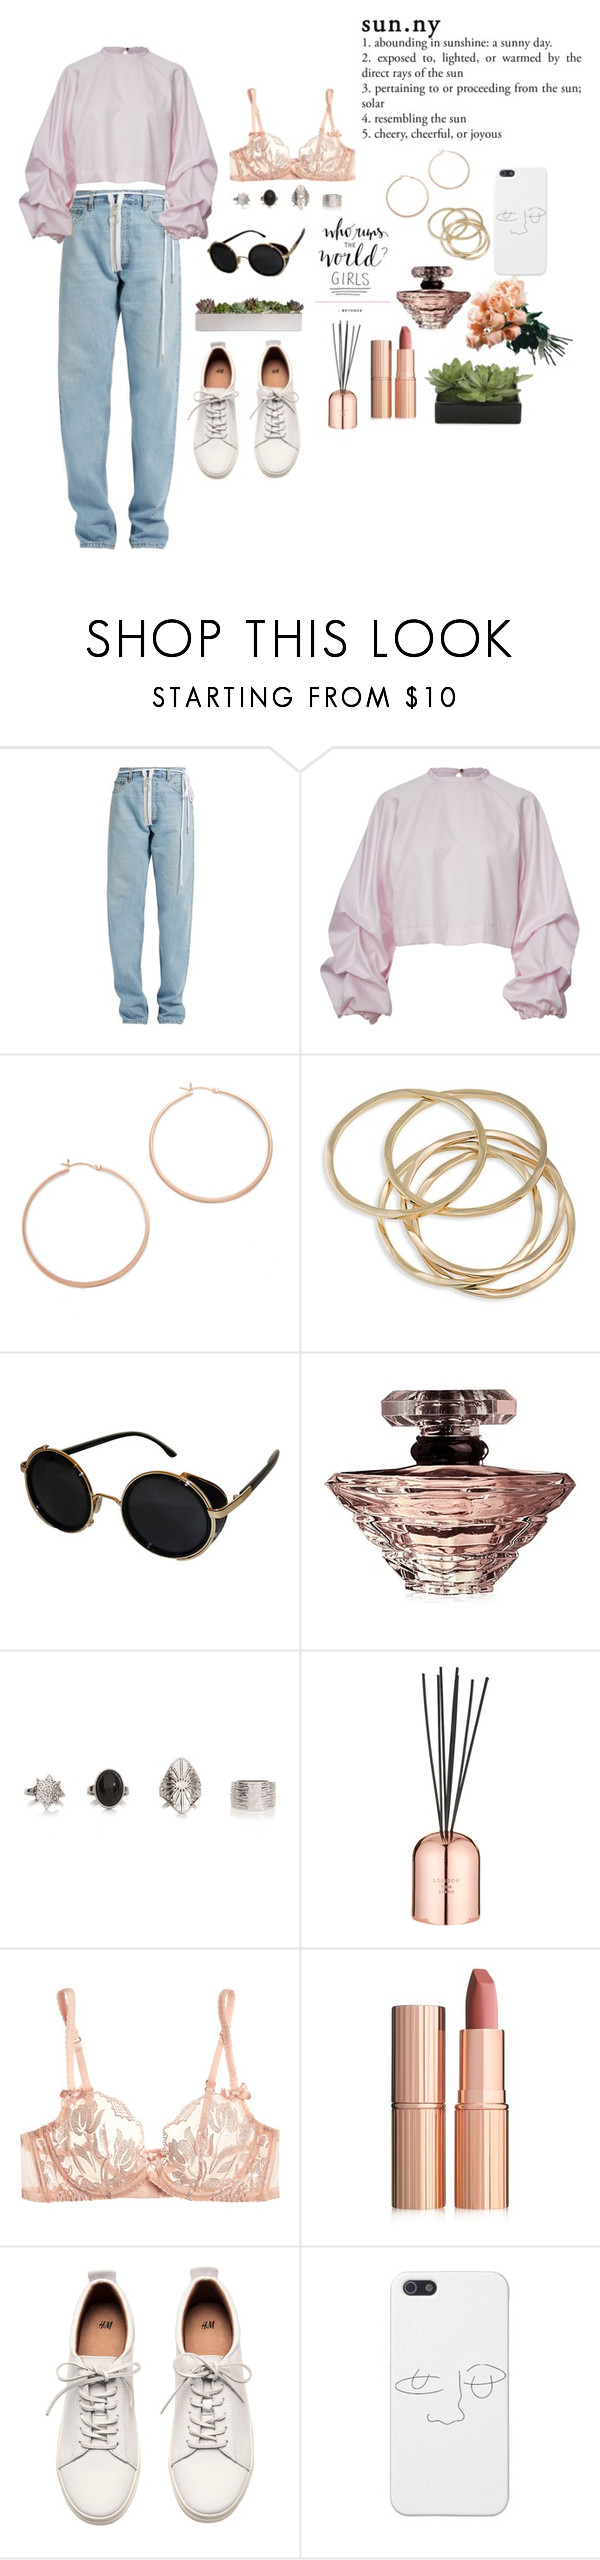 """Sin título #143"" by valusa ❤ liked on Polyvore featuring Off-White, Jennifer Zeuner, ABS by Allen Schwartz, Topshop, Lancôme, Tom Dixon, Agent Provocateur, Charlotte Tilbury, H&M and Lux-Art Silks"